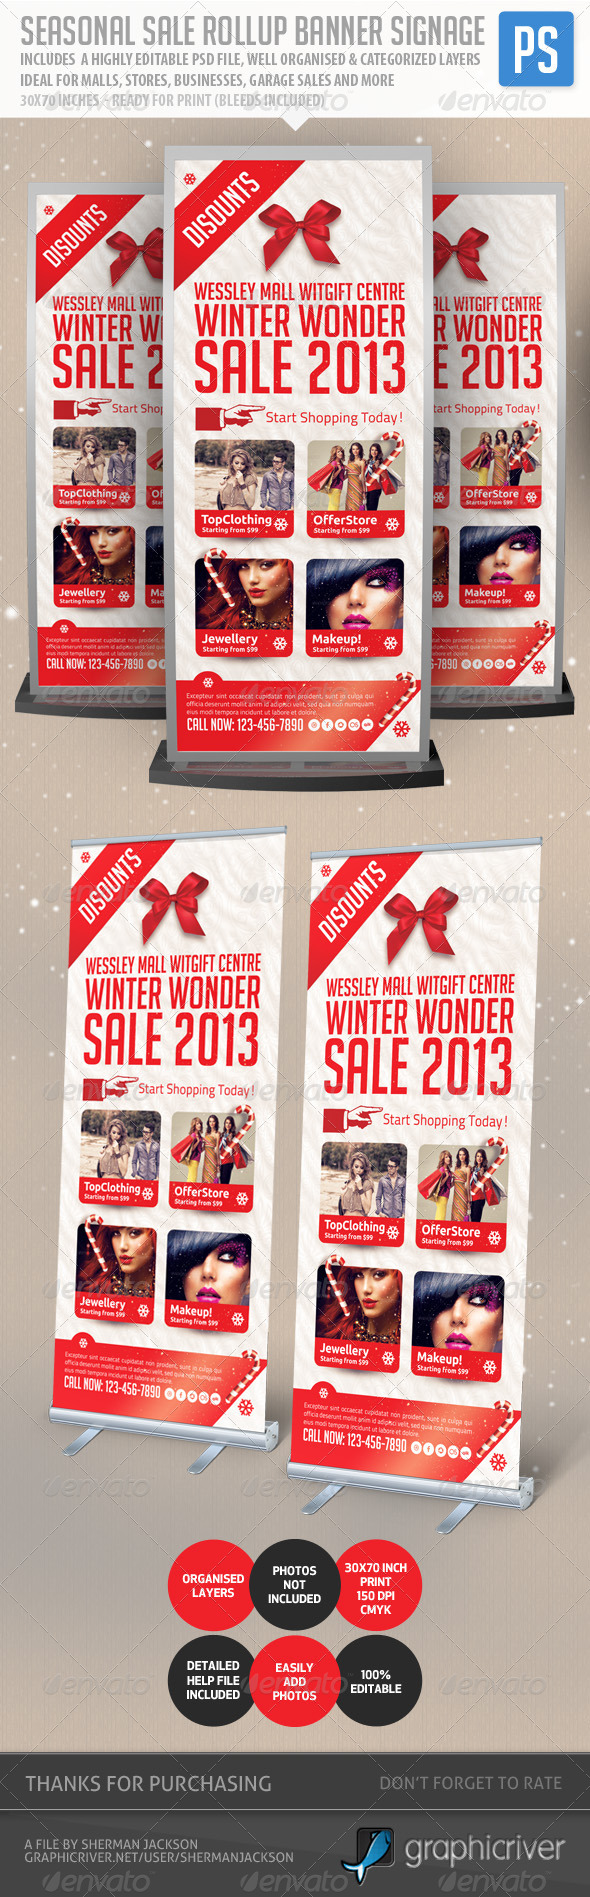 Seasonal Sale Rollup Banner Signage